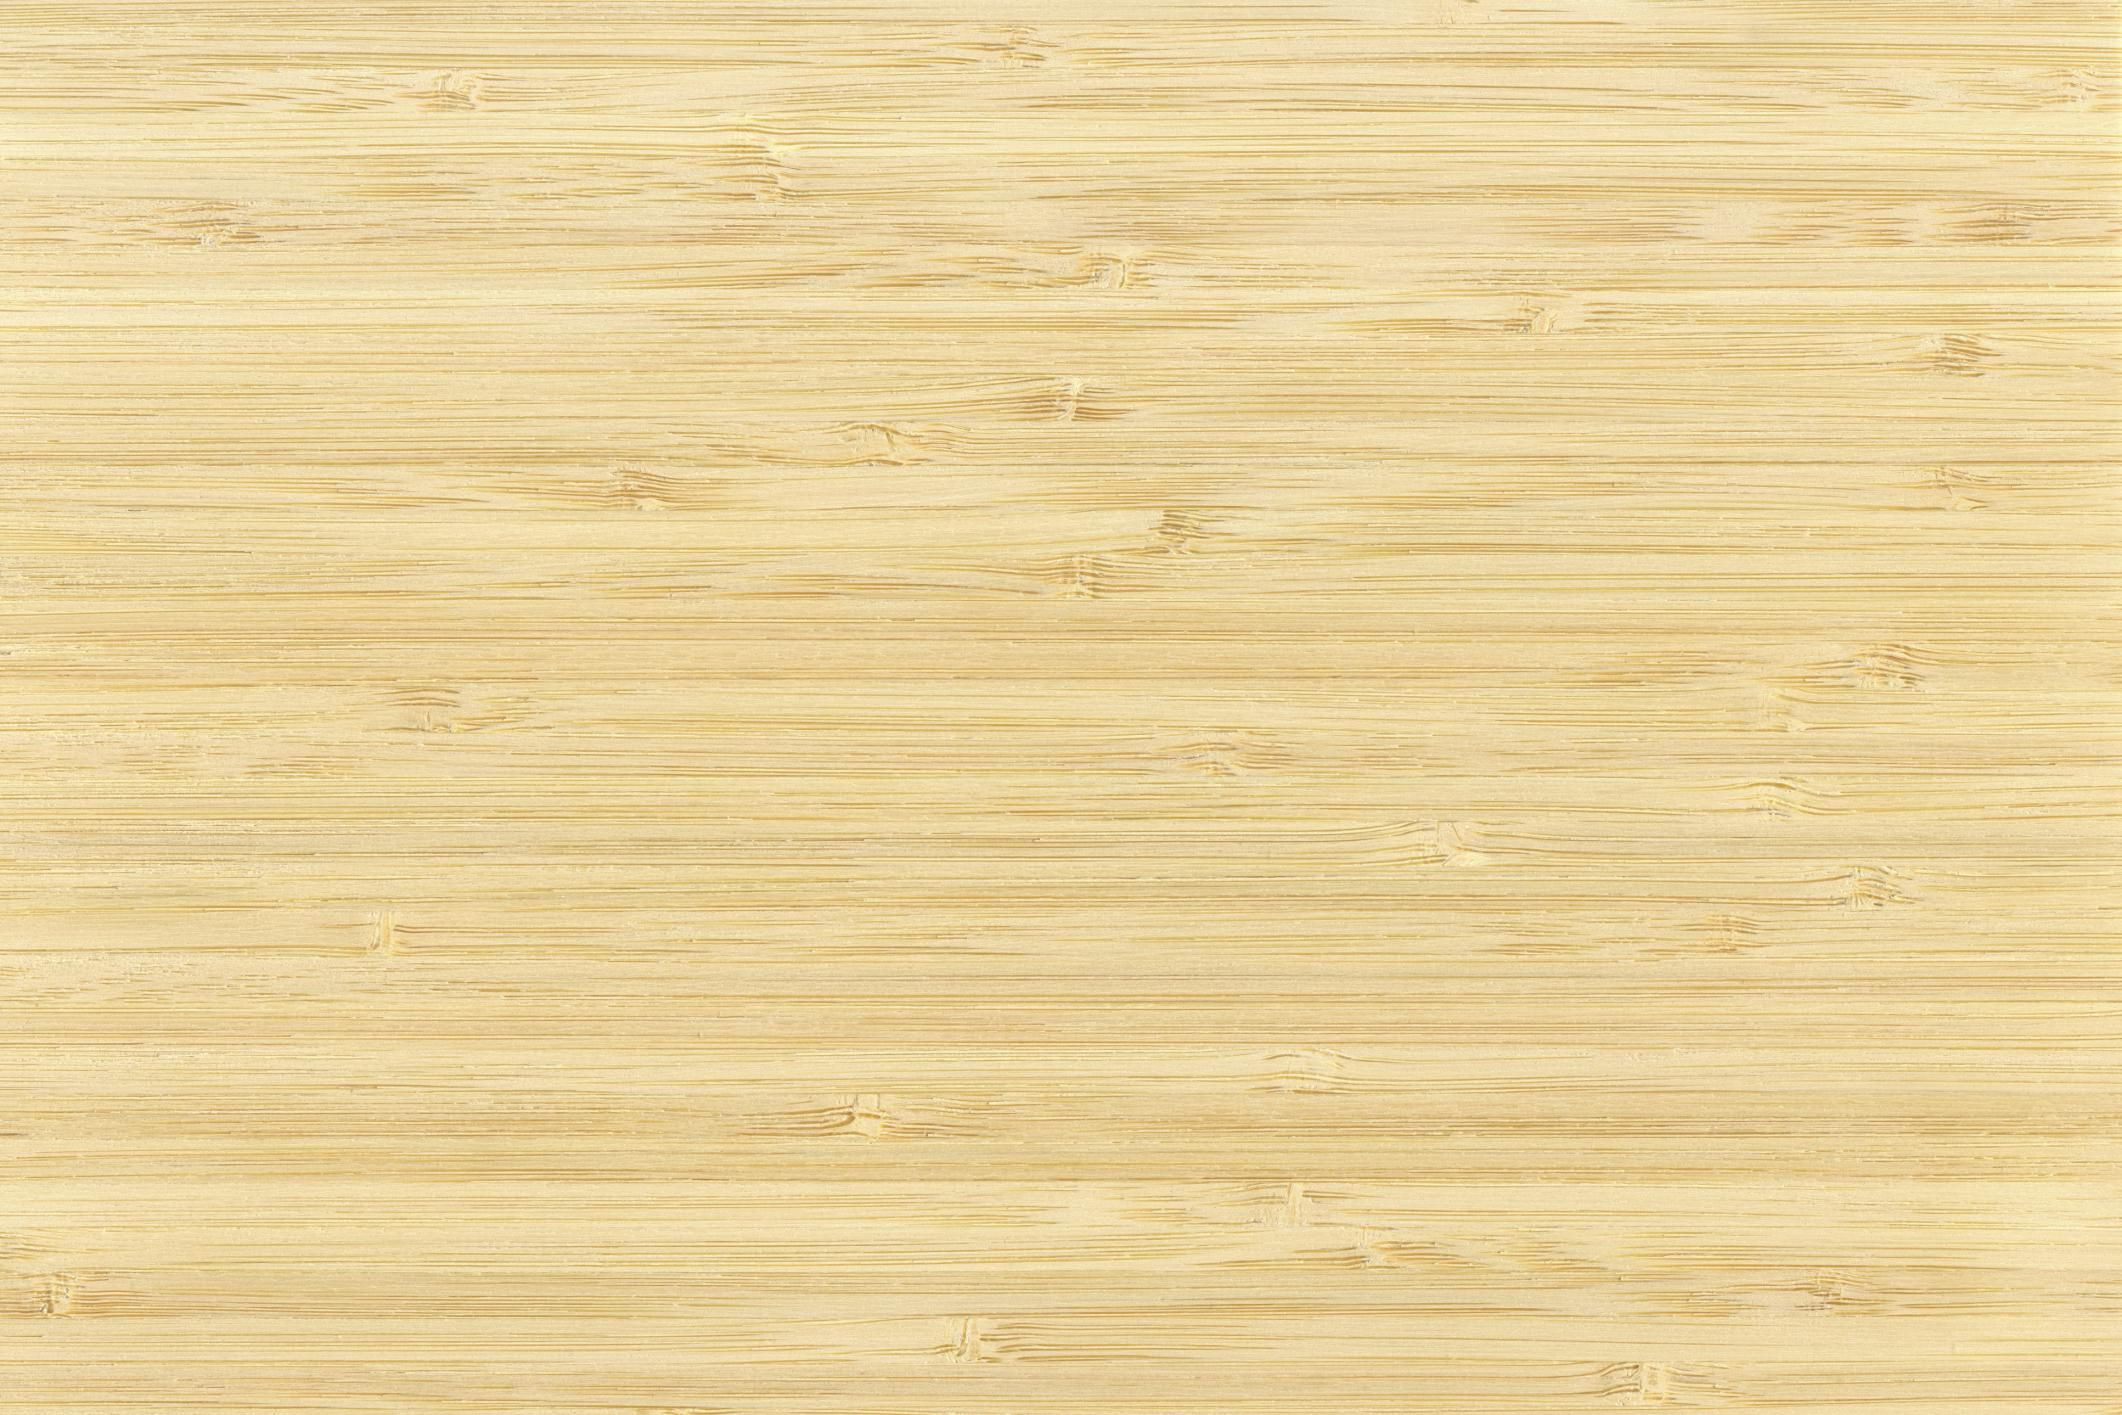 hardwood flooring black friday sale of bamboo flooring in a bathroom things to consider in 182740579 56a2fd883df78cf7727b6d14